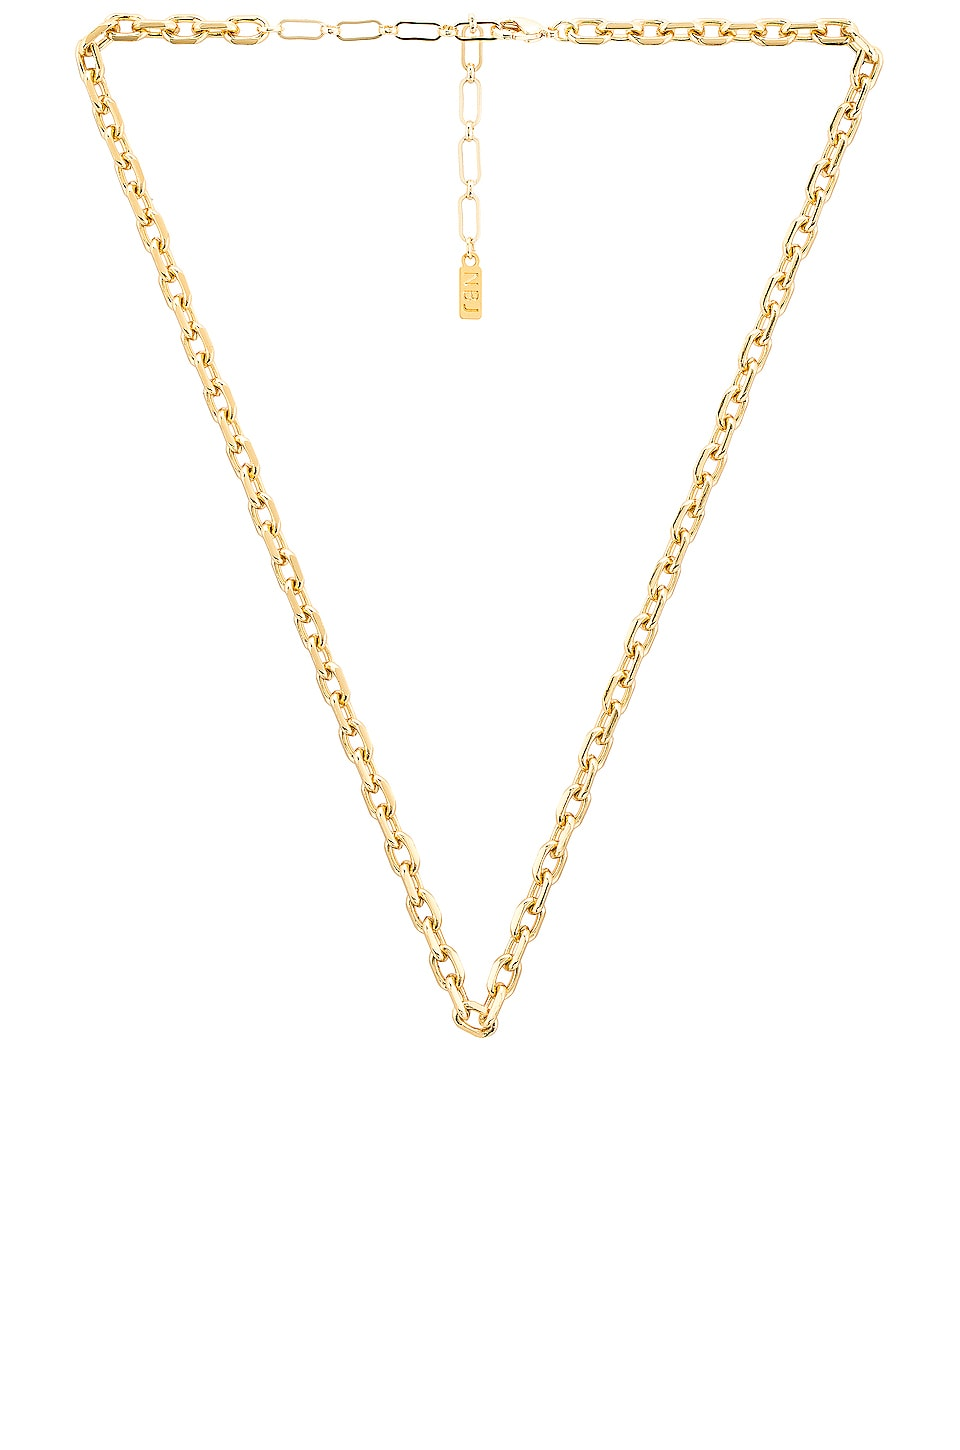 Natalie B Jewelry Ottilia Hearty Oval Necklace in Gold